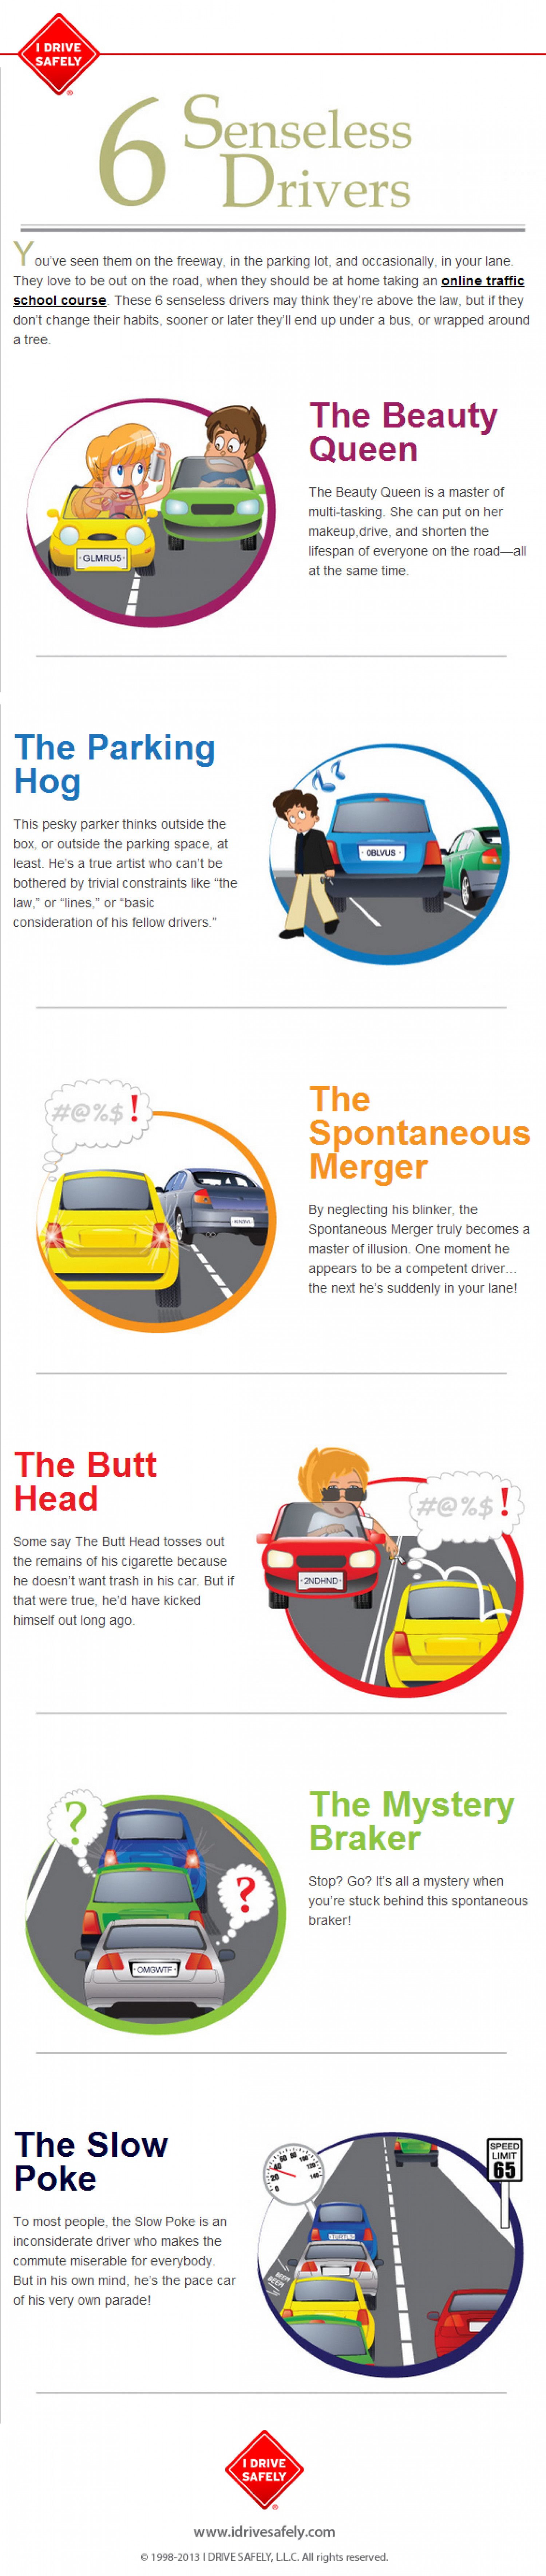 The 6 Senseless Drivers Infographic